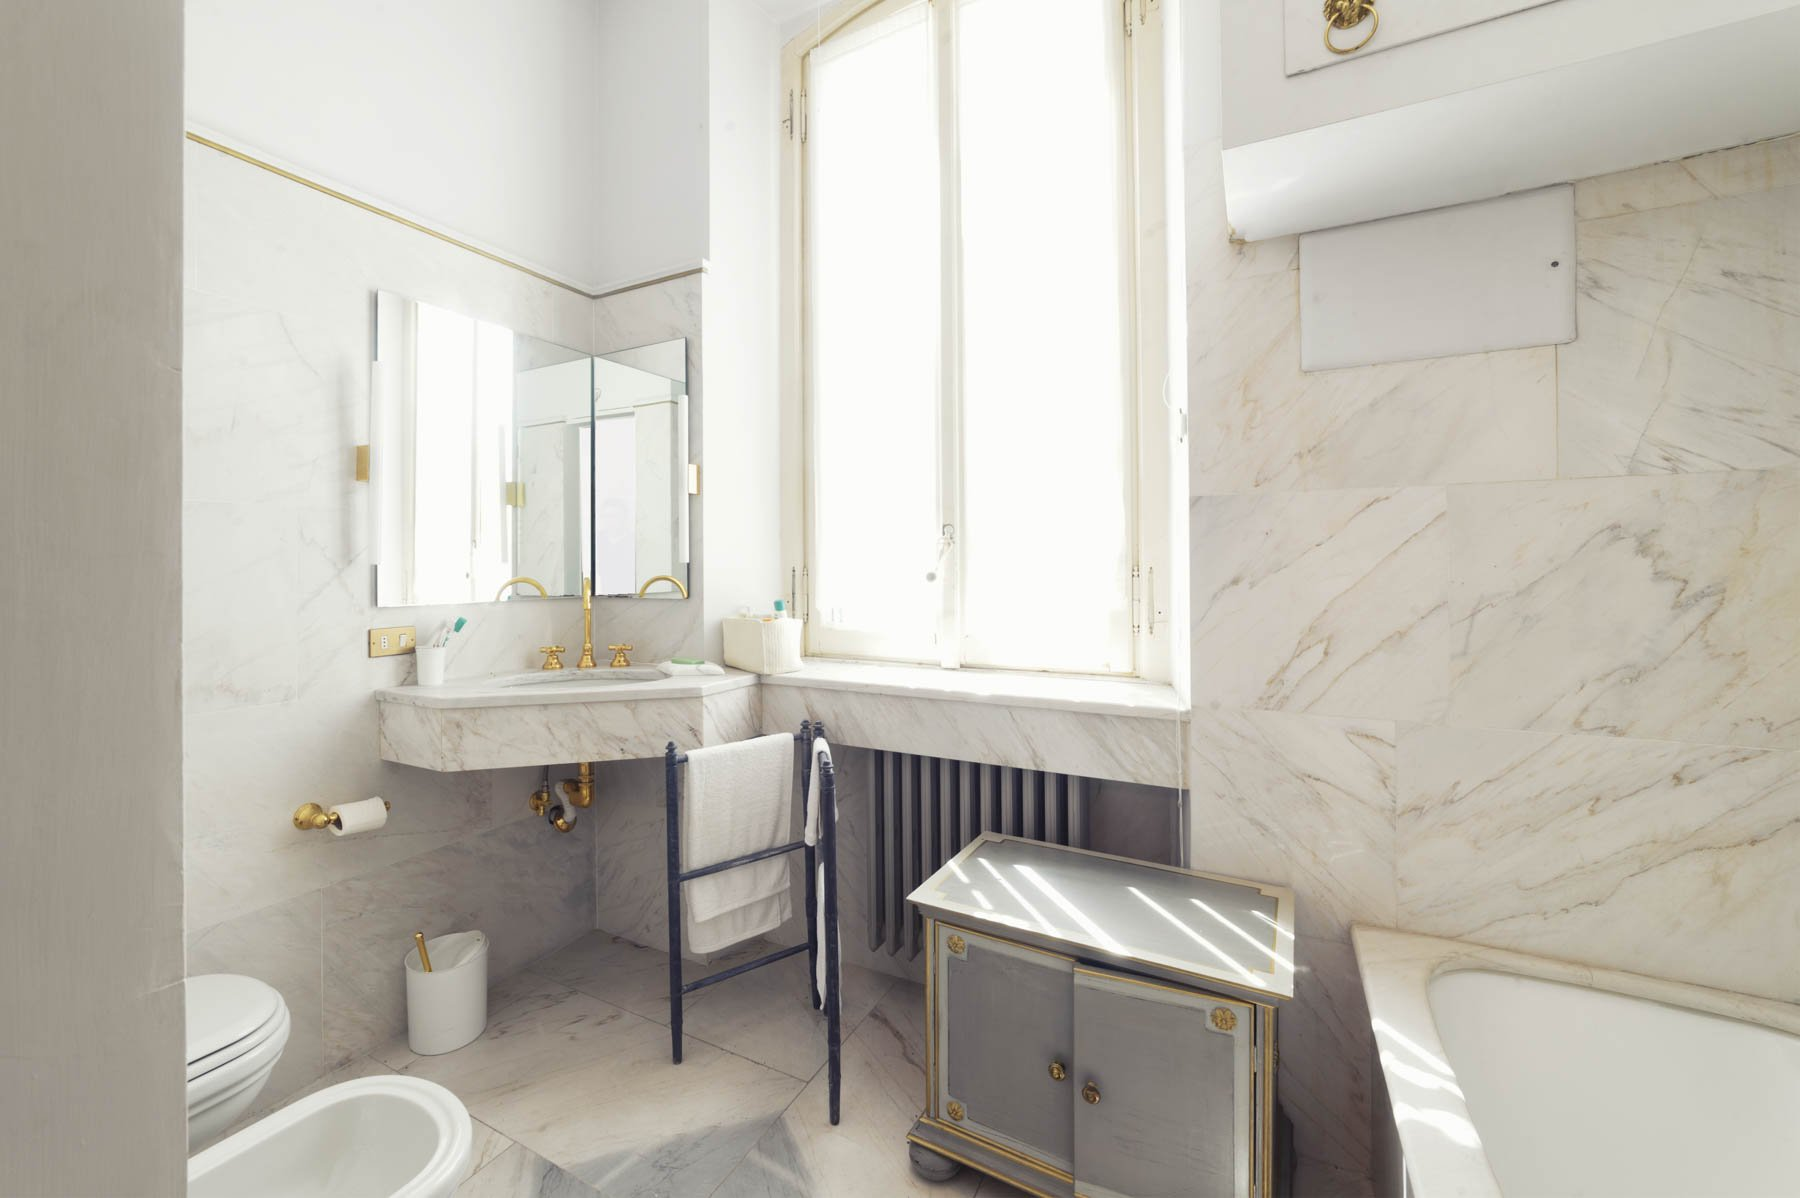 Luxurious apartment for sale in Stresa - bathroom